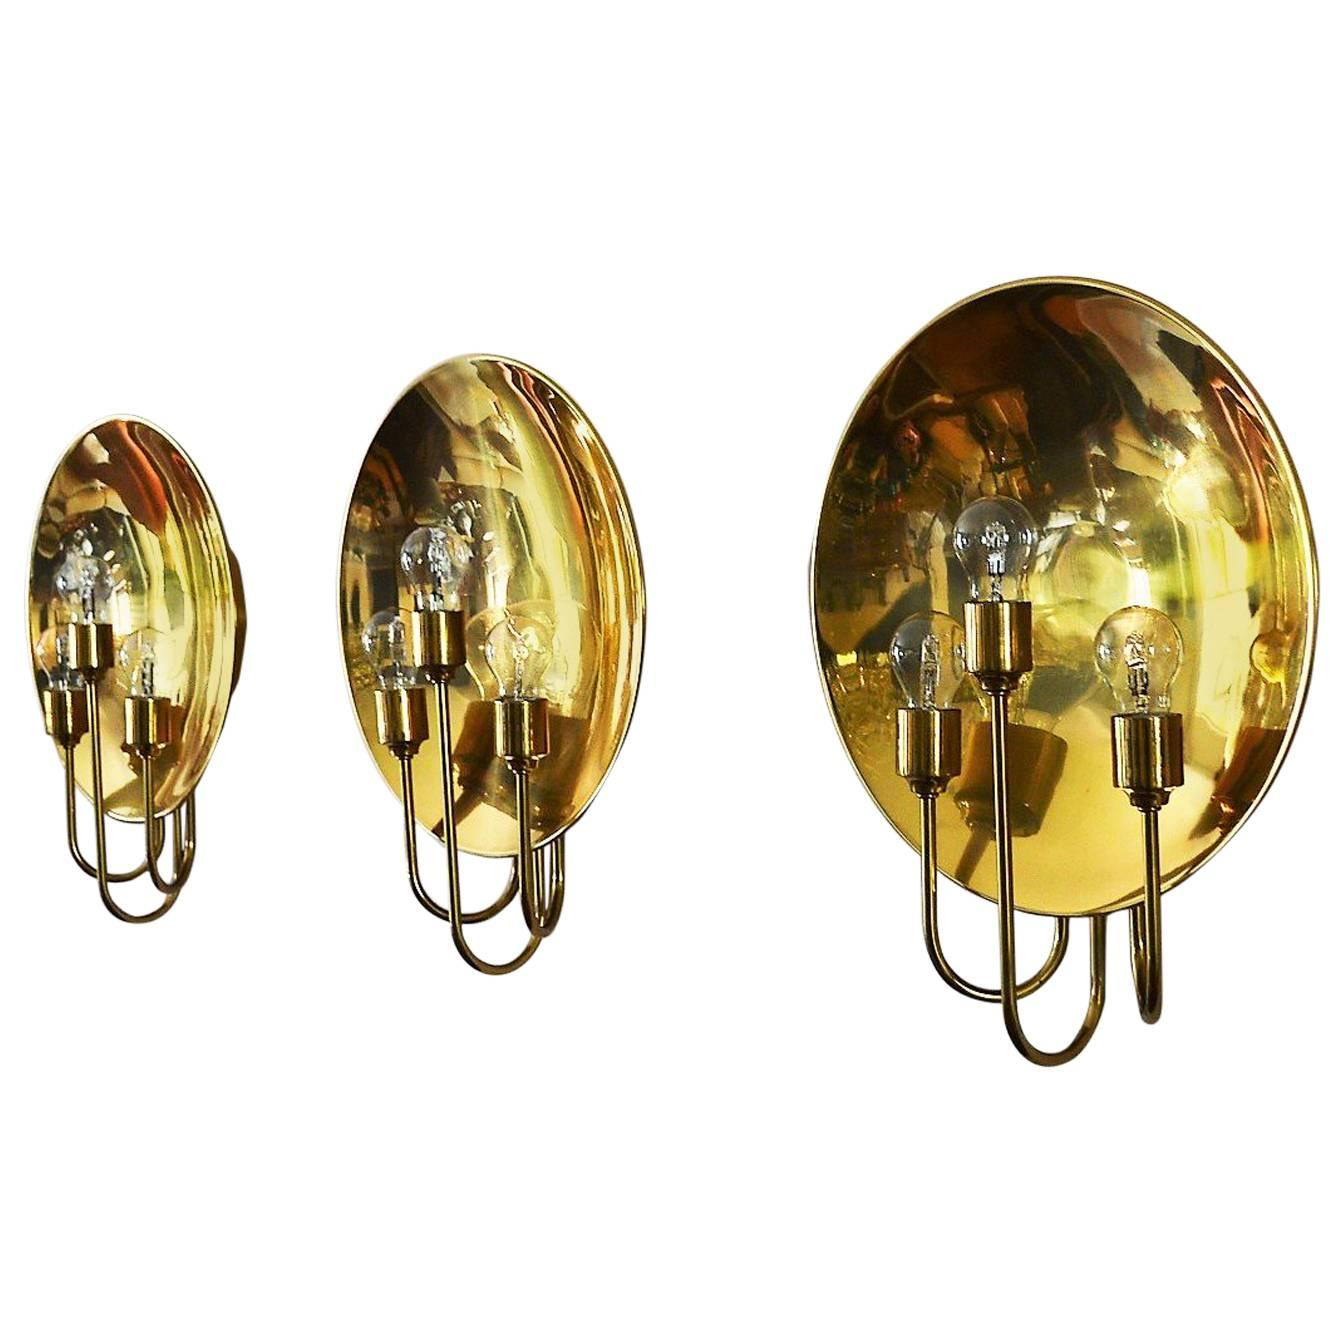 German Midcentury Brass Wall Lights or Sconces by Florian Schulz, 1970s